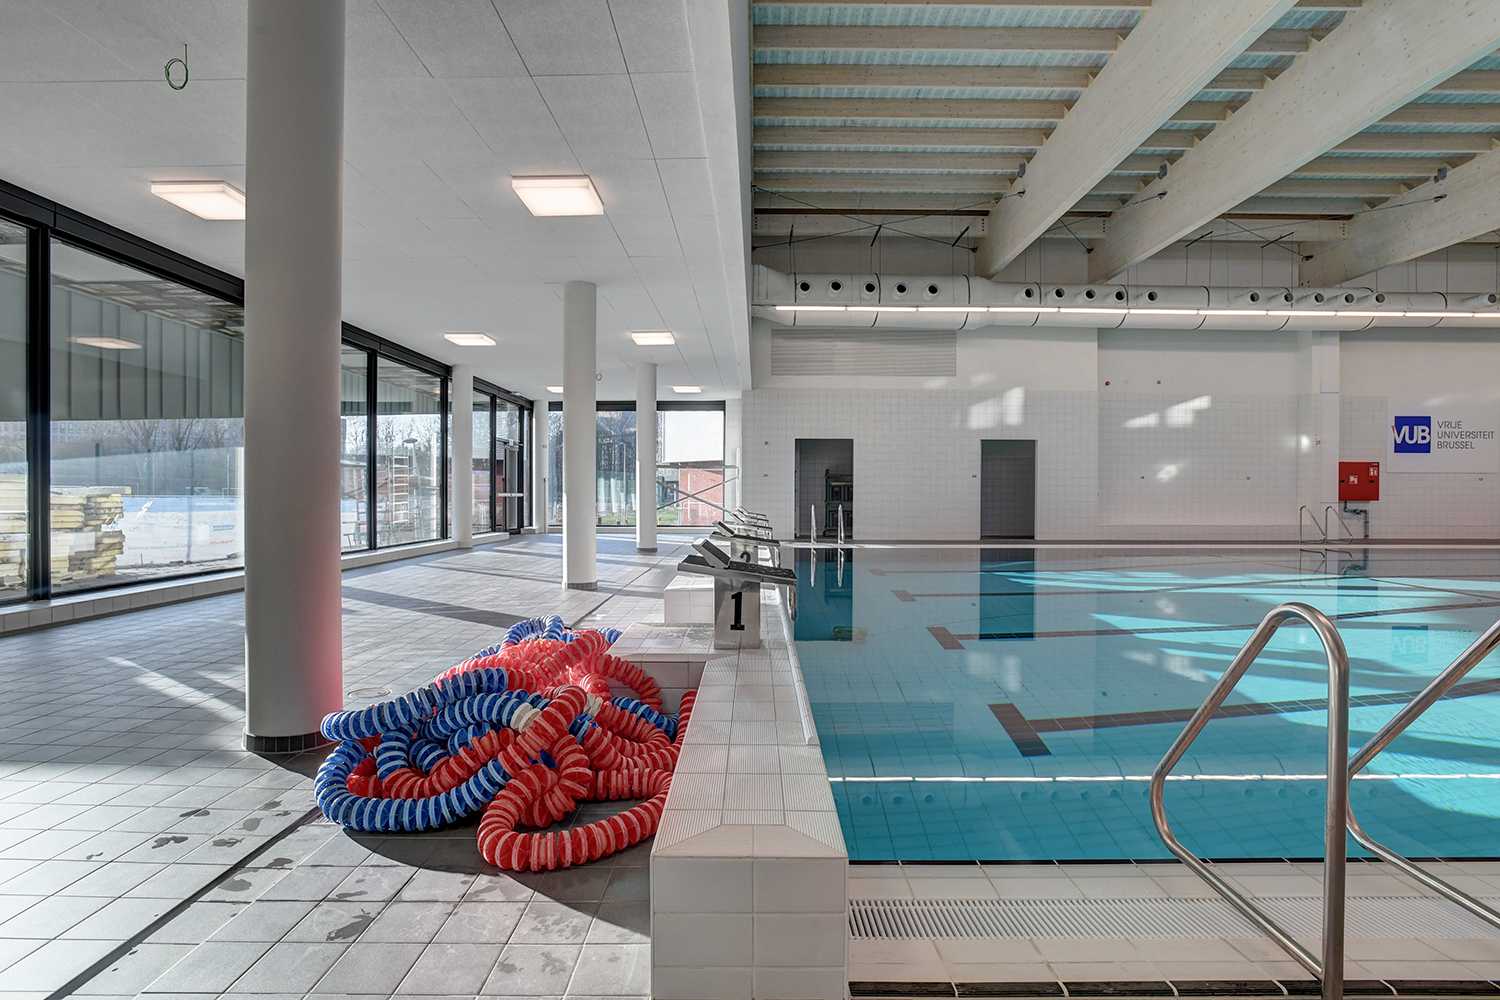 Interior view of the swimming pool